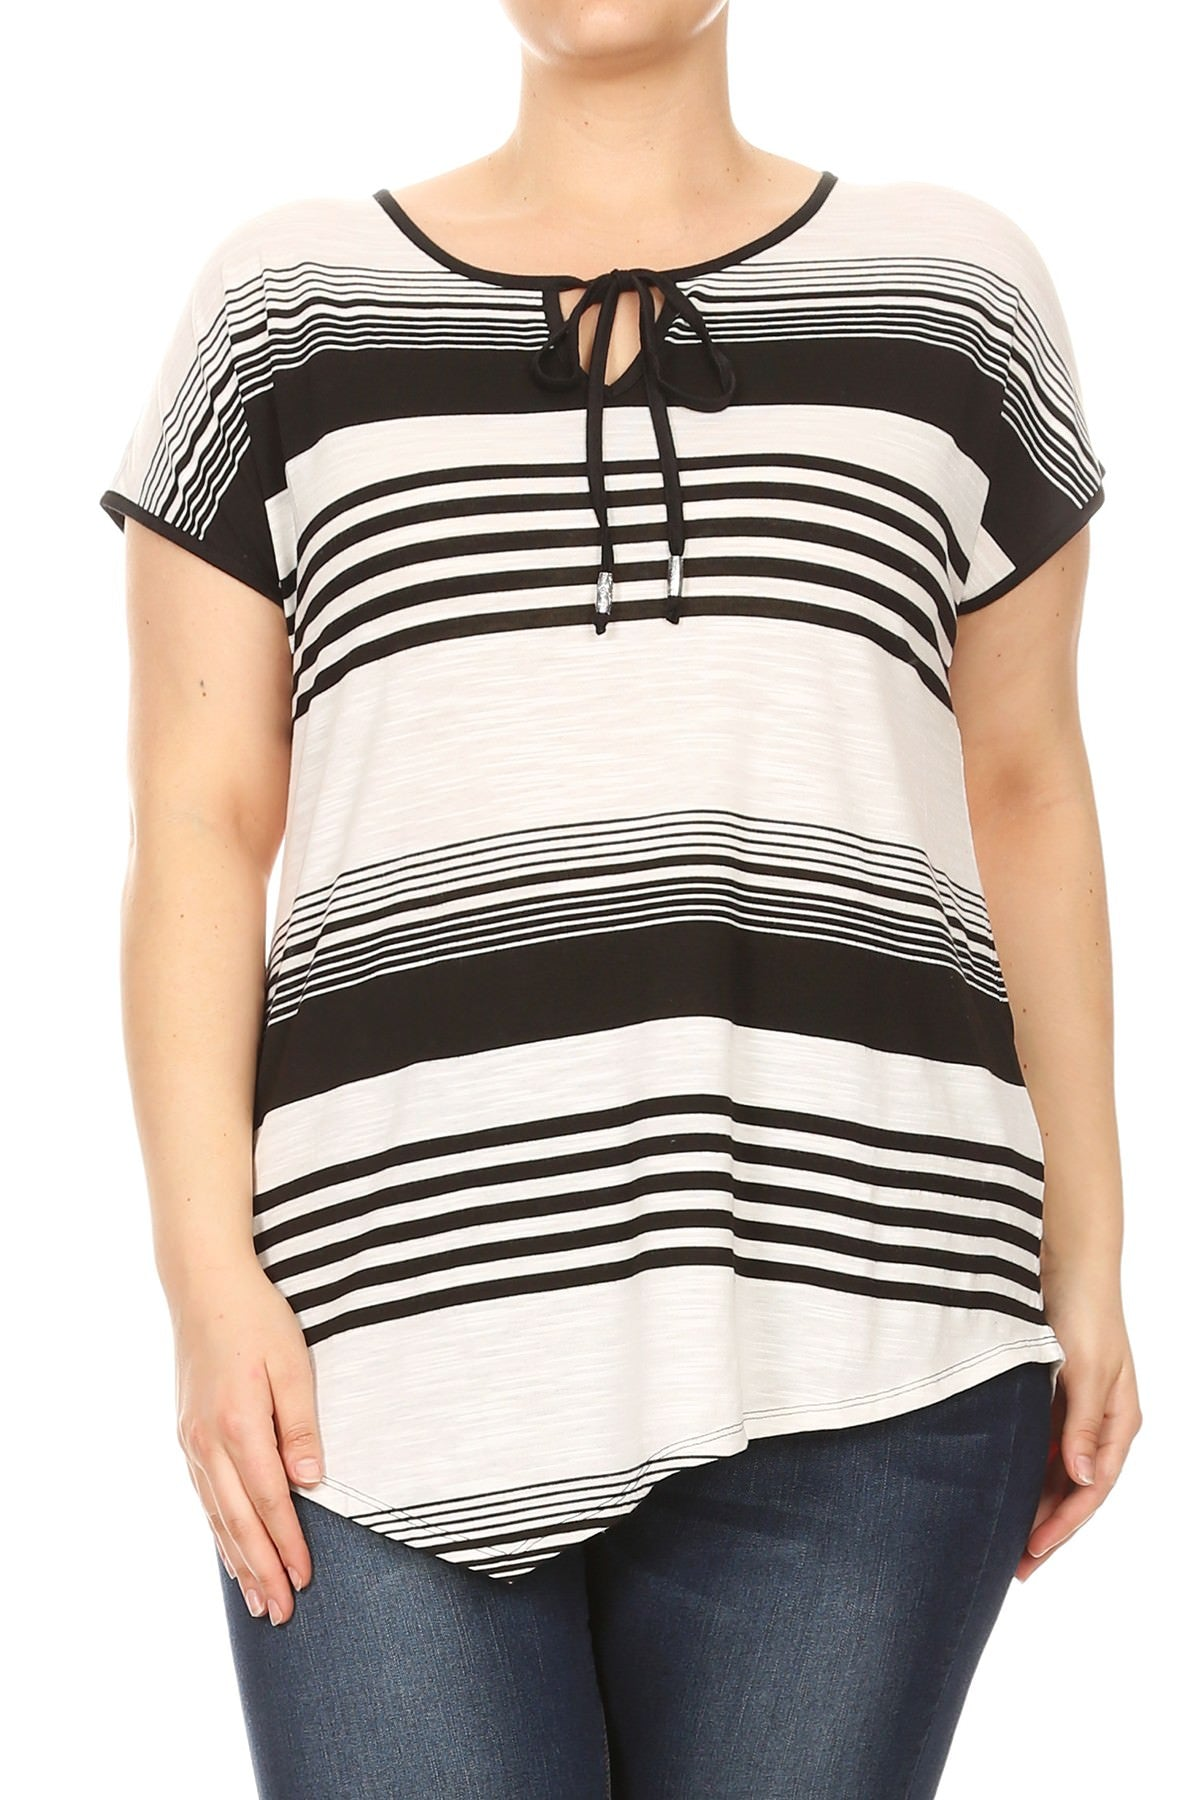 59c6085574 Women Plus Size Thin and Thick Stripes Short Sleeve Top Tee Blouse Black  SE17013 ...